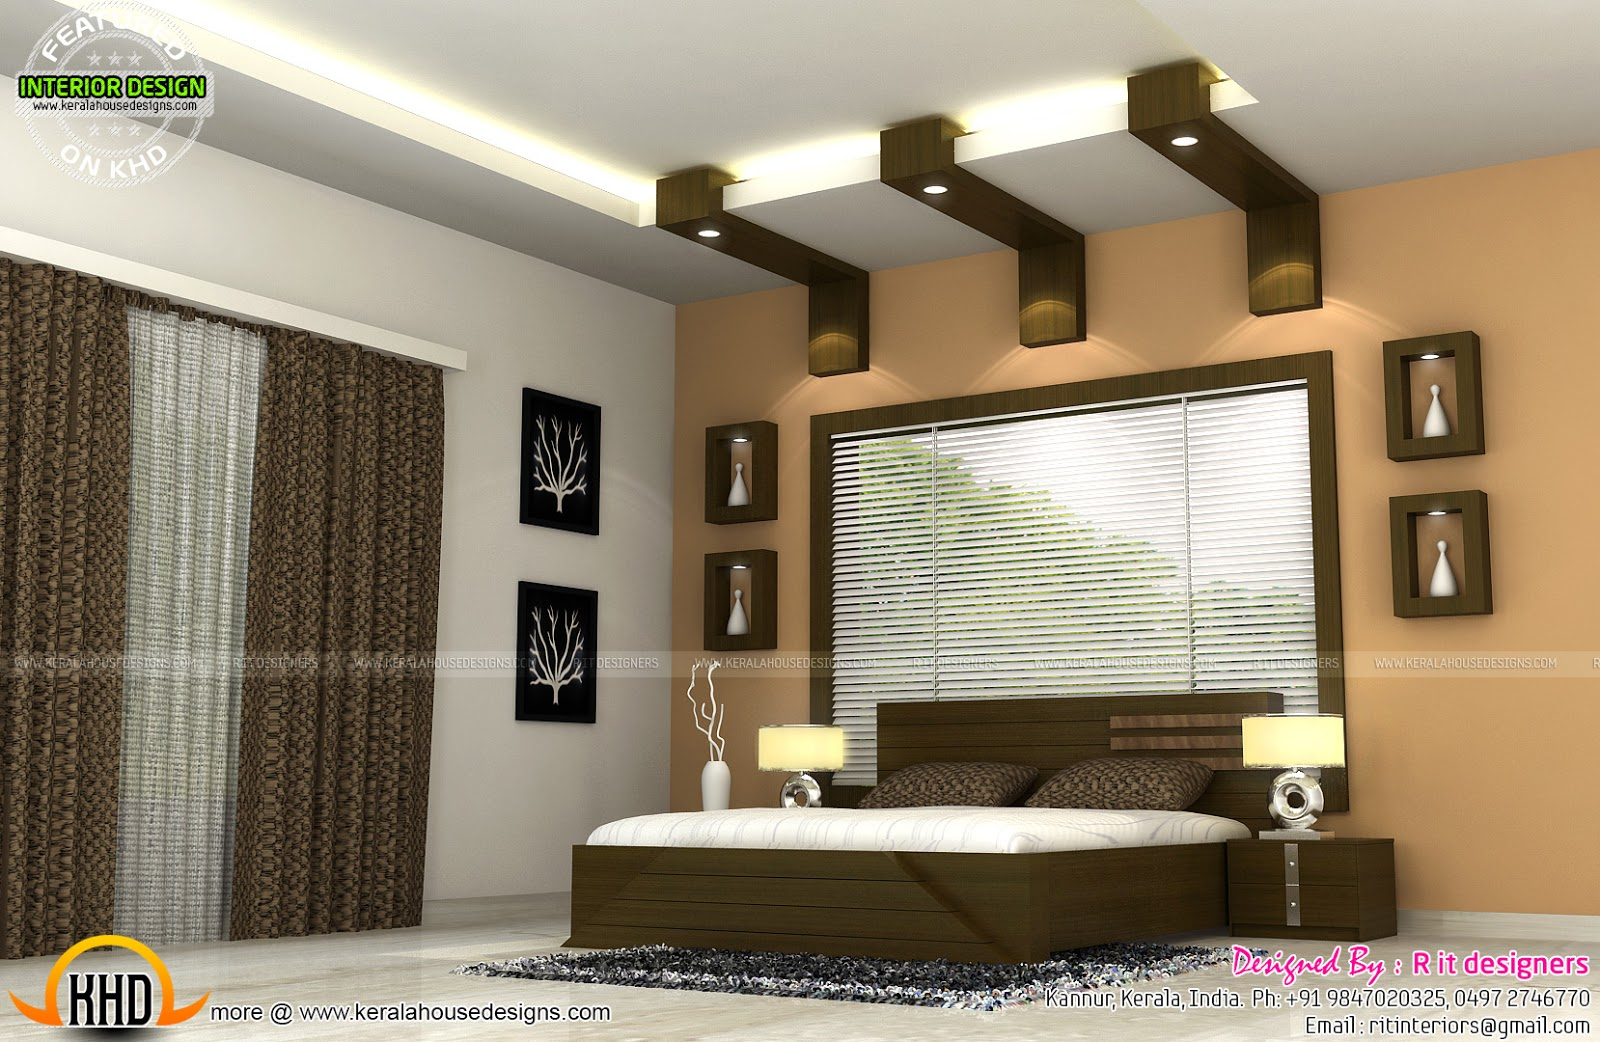 Interiors of bedrooms and kitchen kerala home design and for Home bedroom design photos